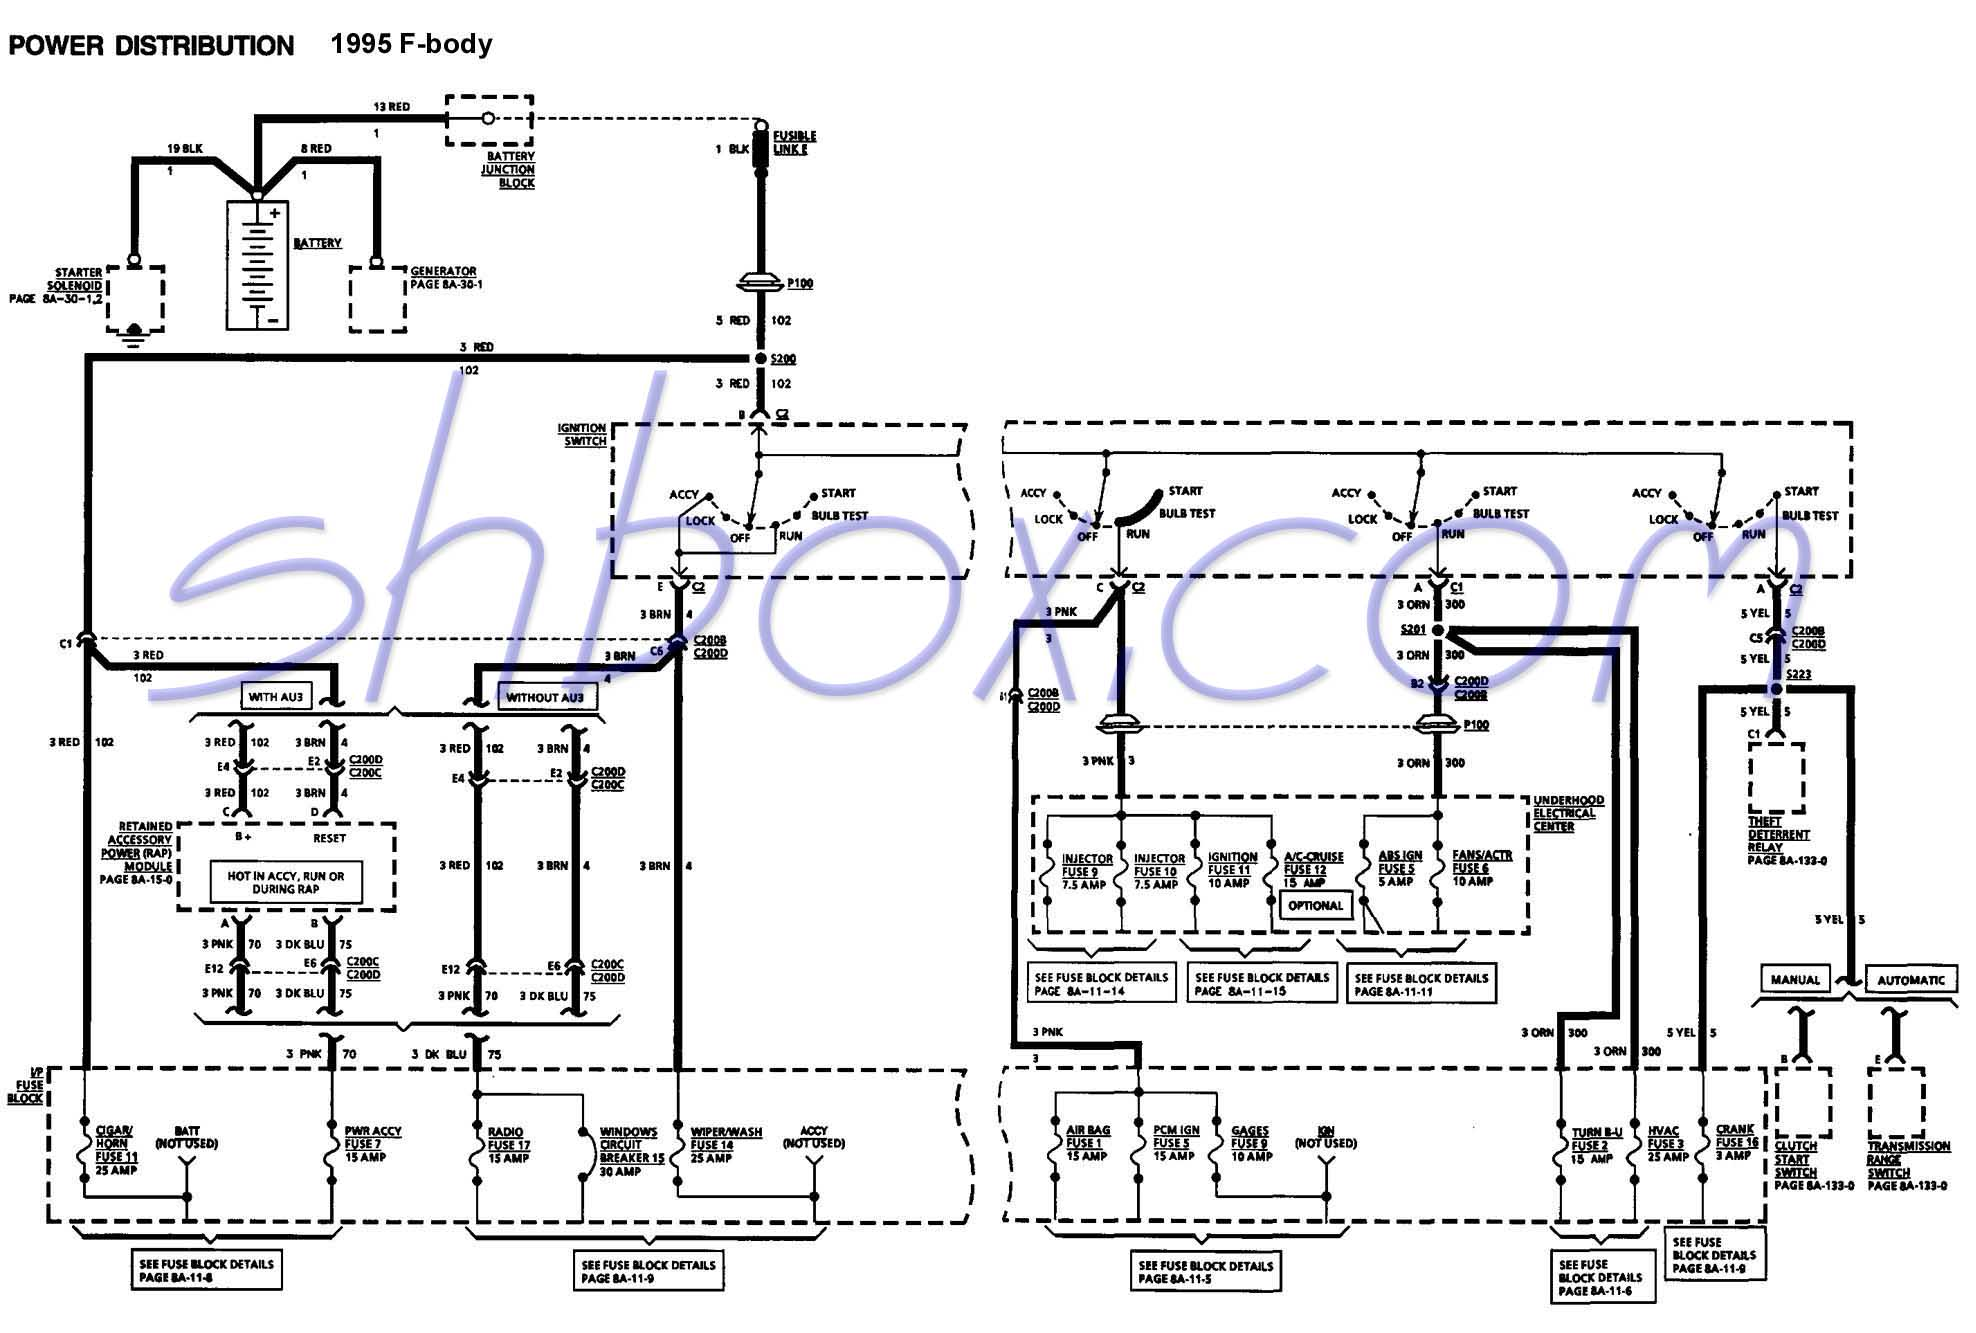 hight resolution of 94 trans am wiring diagram wiring diagram schema94 trans am wiring diagram wiring library 94 trans